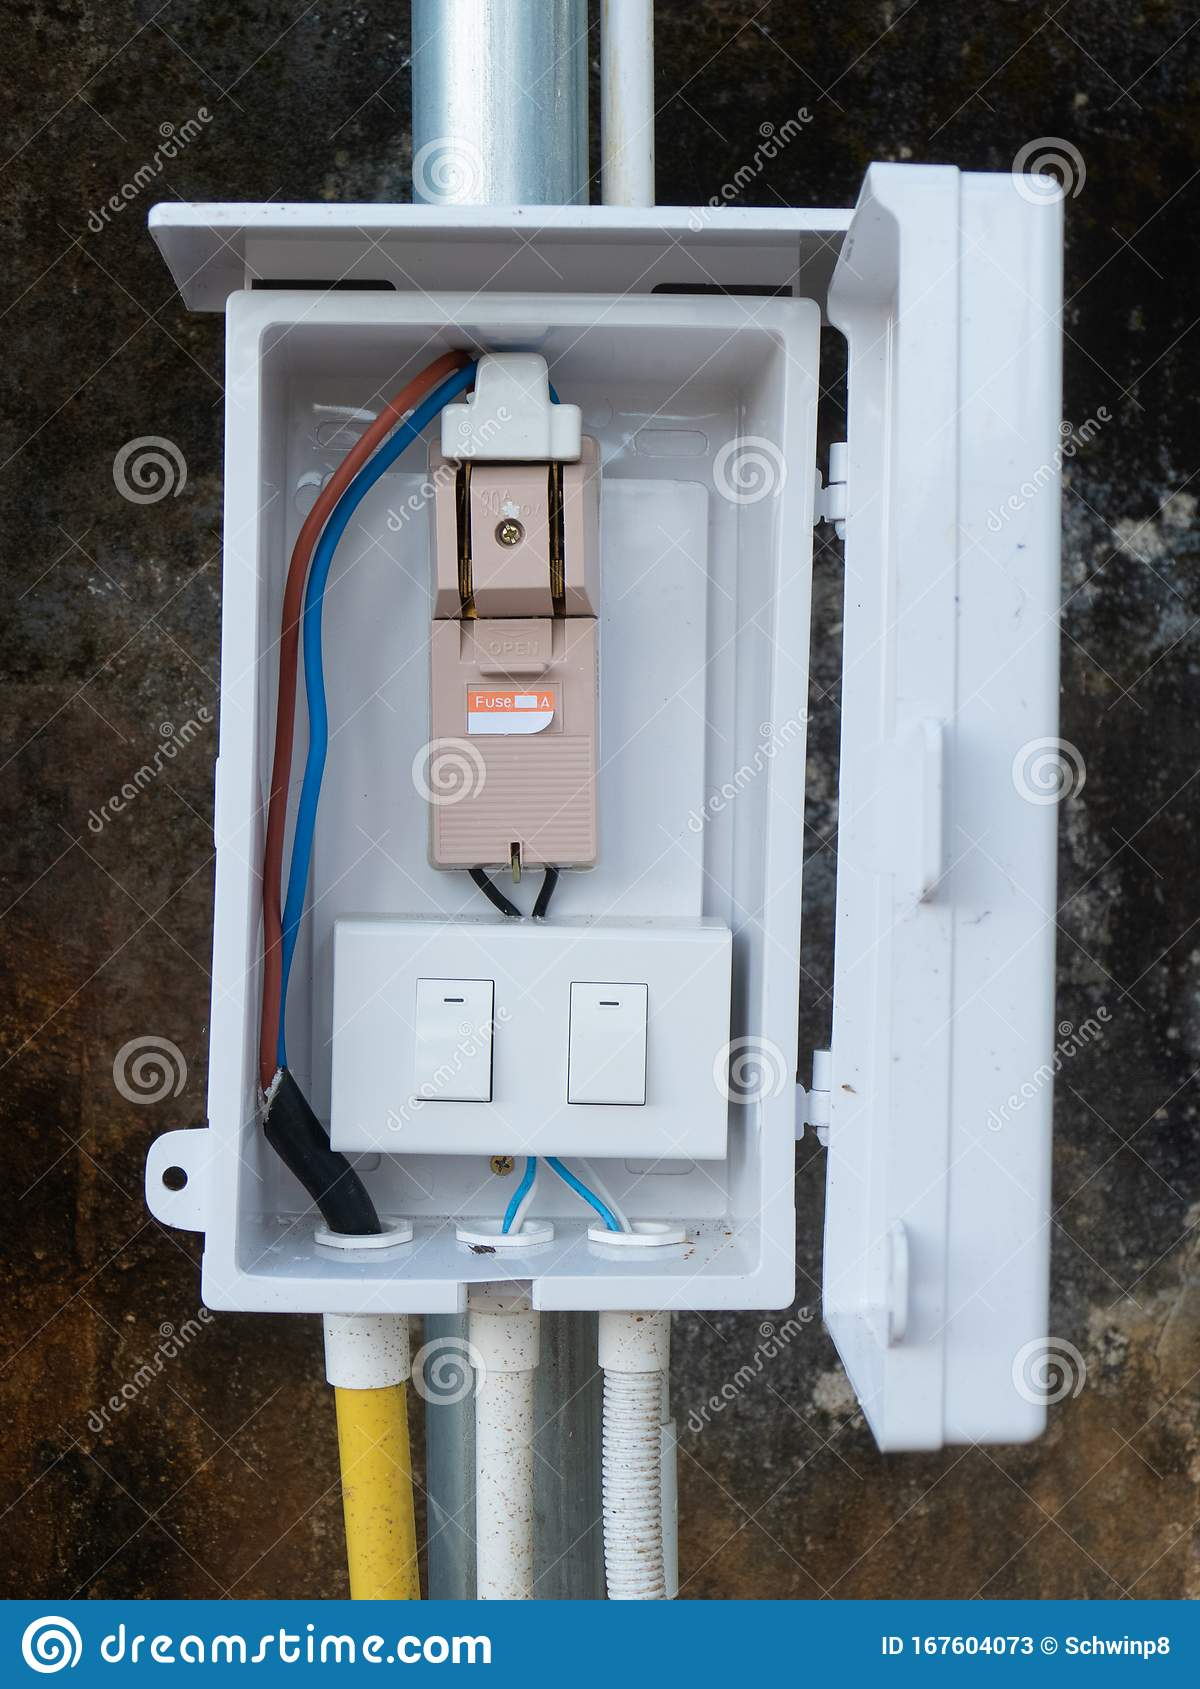 Fuse Cutout And Lighting Switch In A Box Stock Image